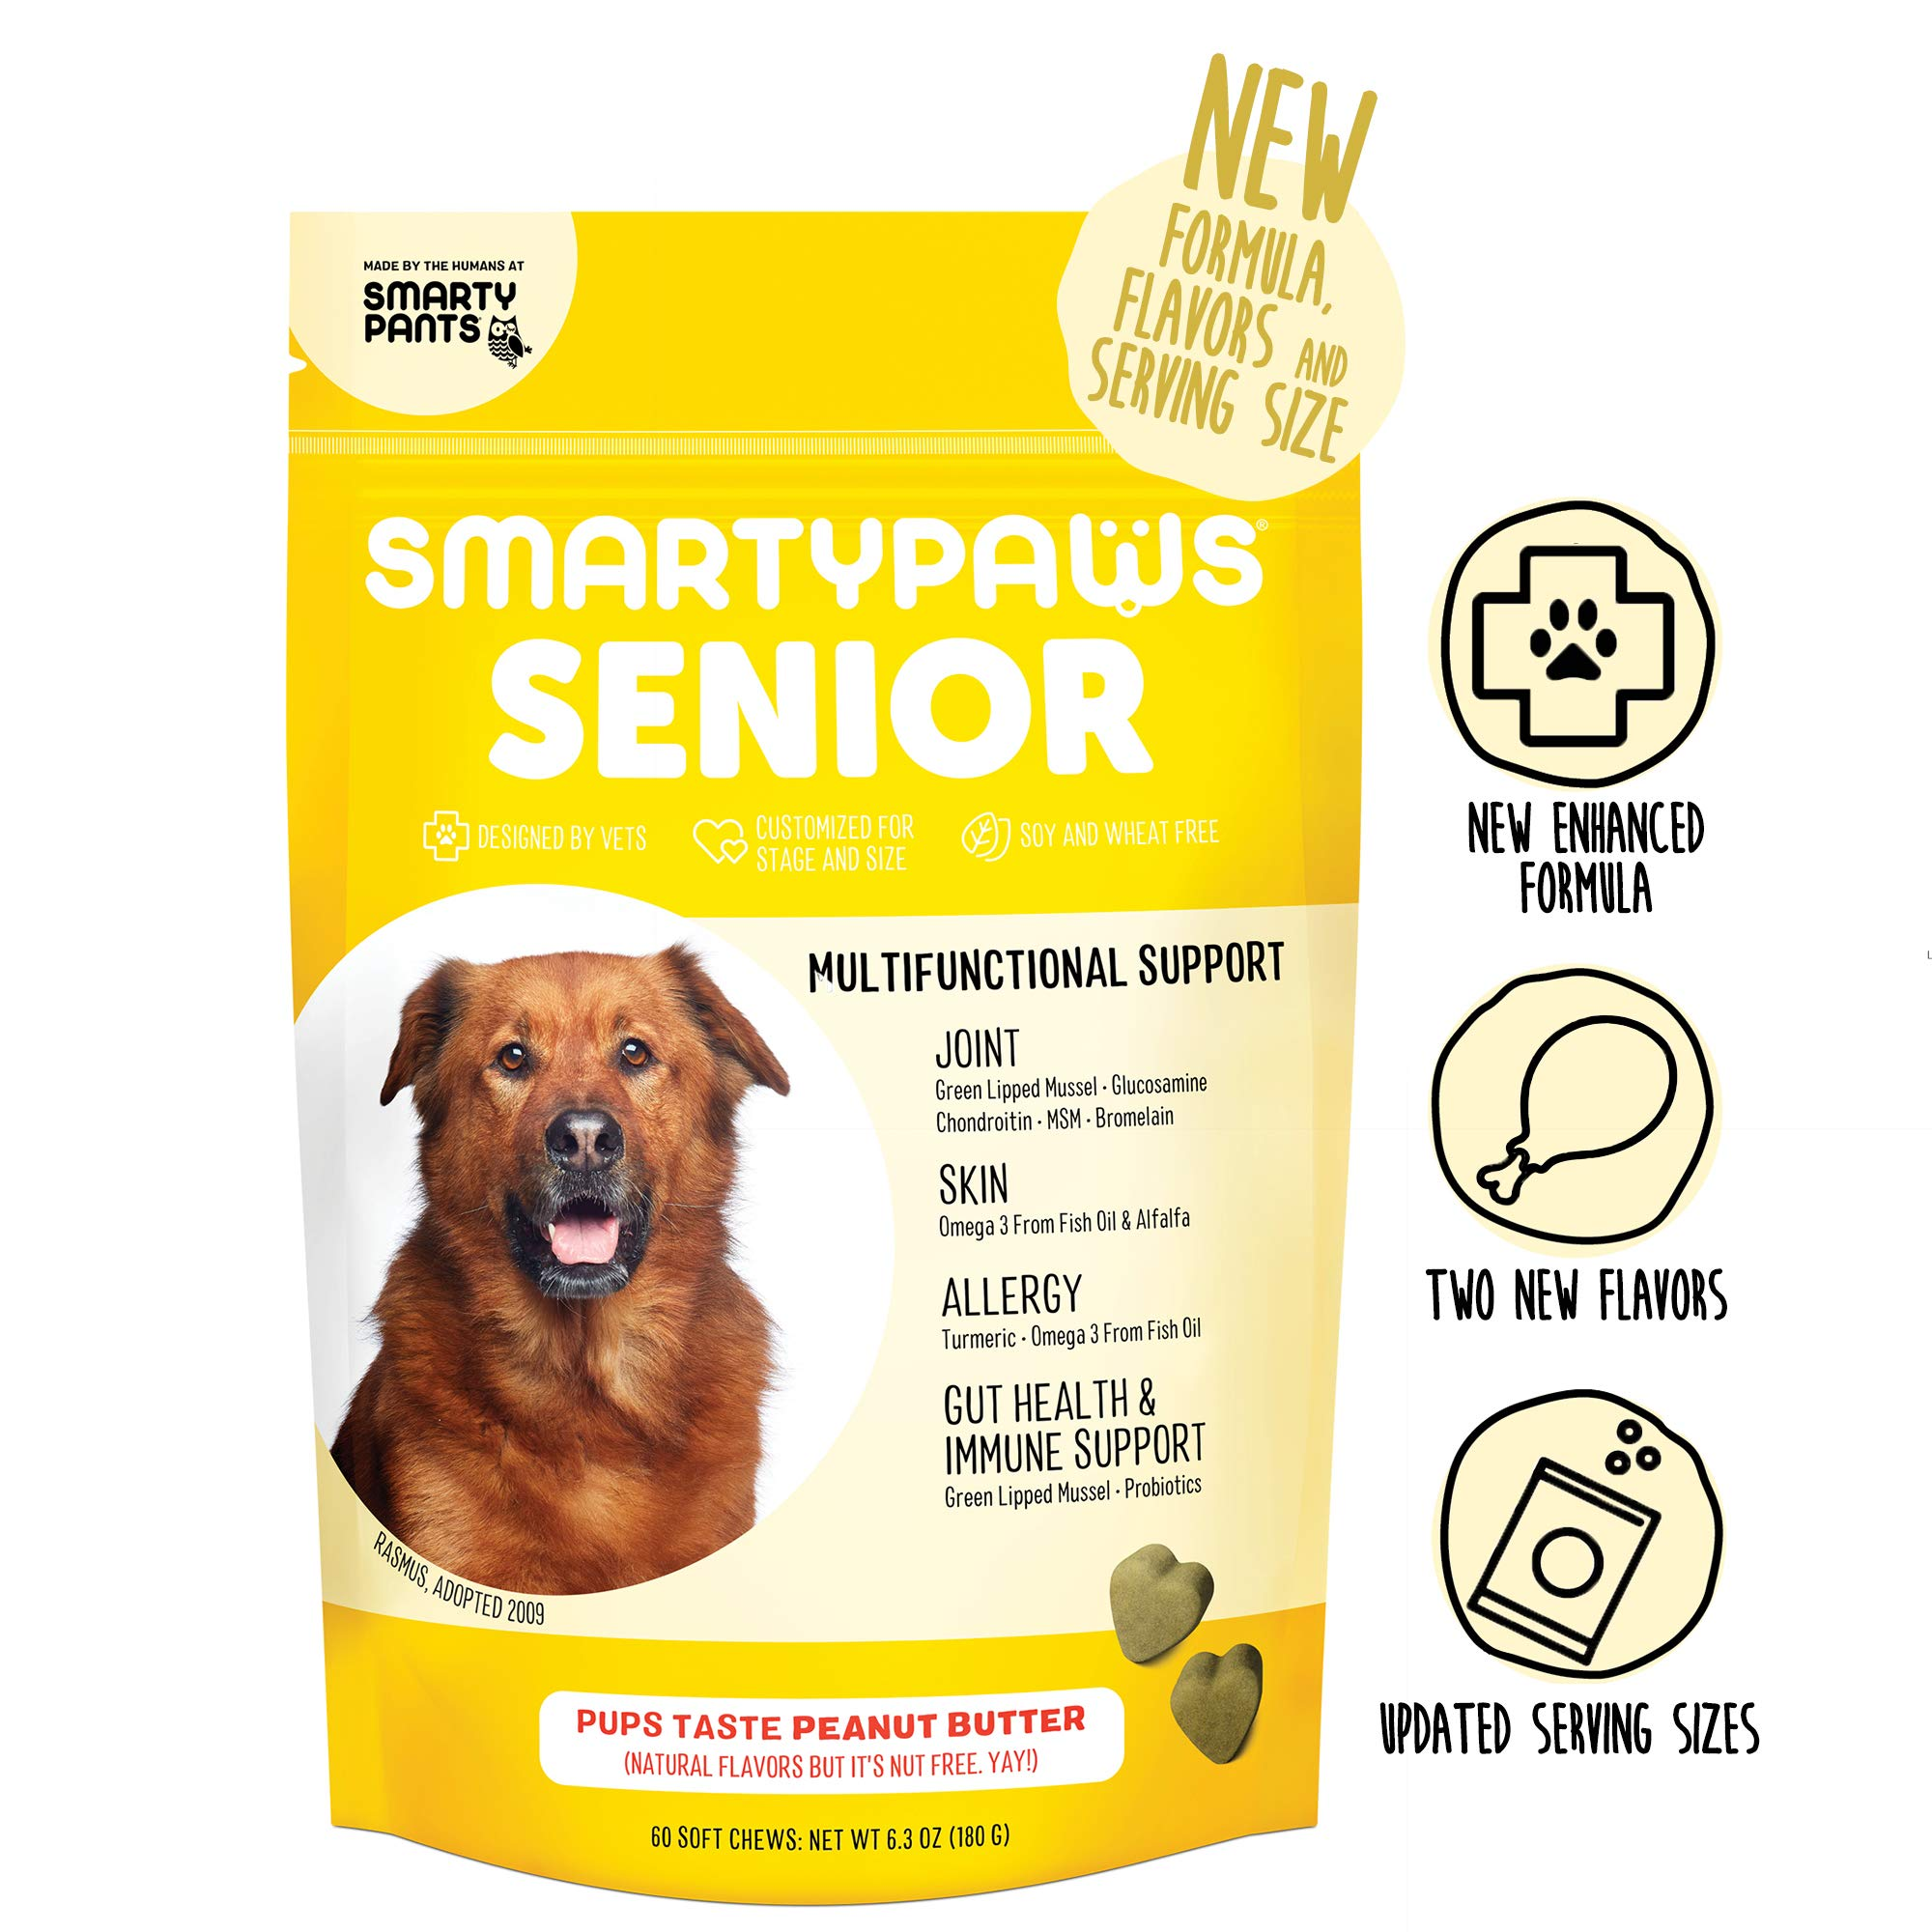 SmartyPaws Dog Supplement Chew for Seniors - Glucosamine, Probiotics, Chondroitin, Fish Oil Omega 3, MSM for Hip & Joint Support, Organic Turmeric, Peanut Butter Flavor (60 ct) - Packaging May Vary by SmartyPants